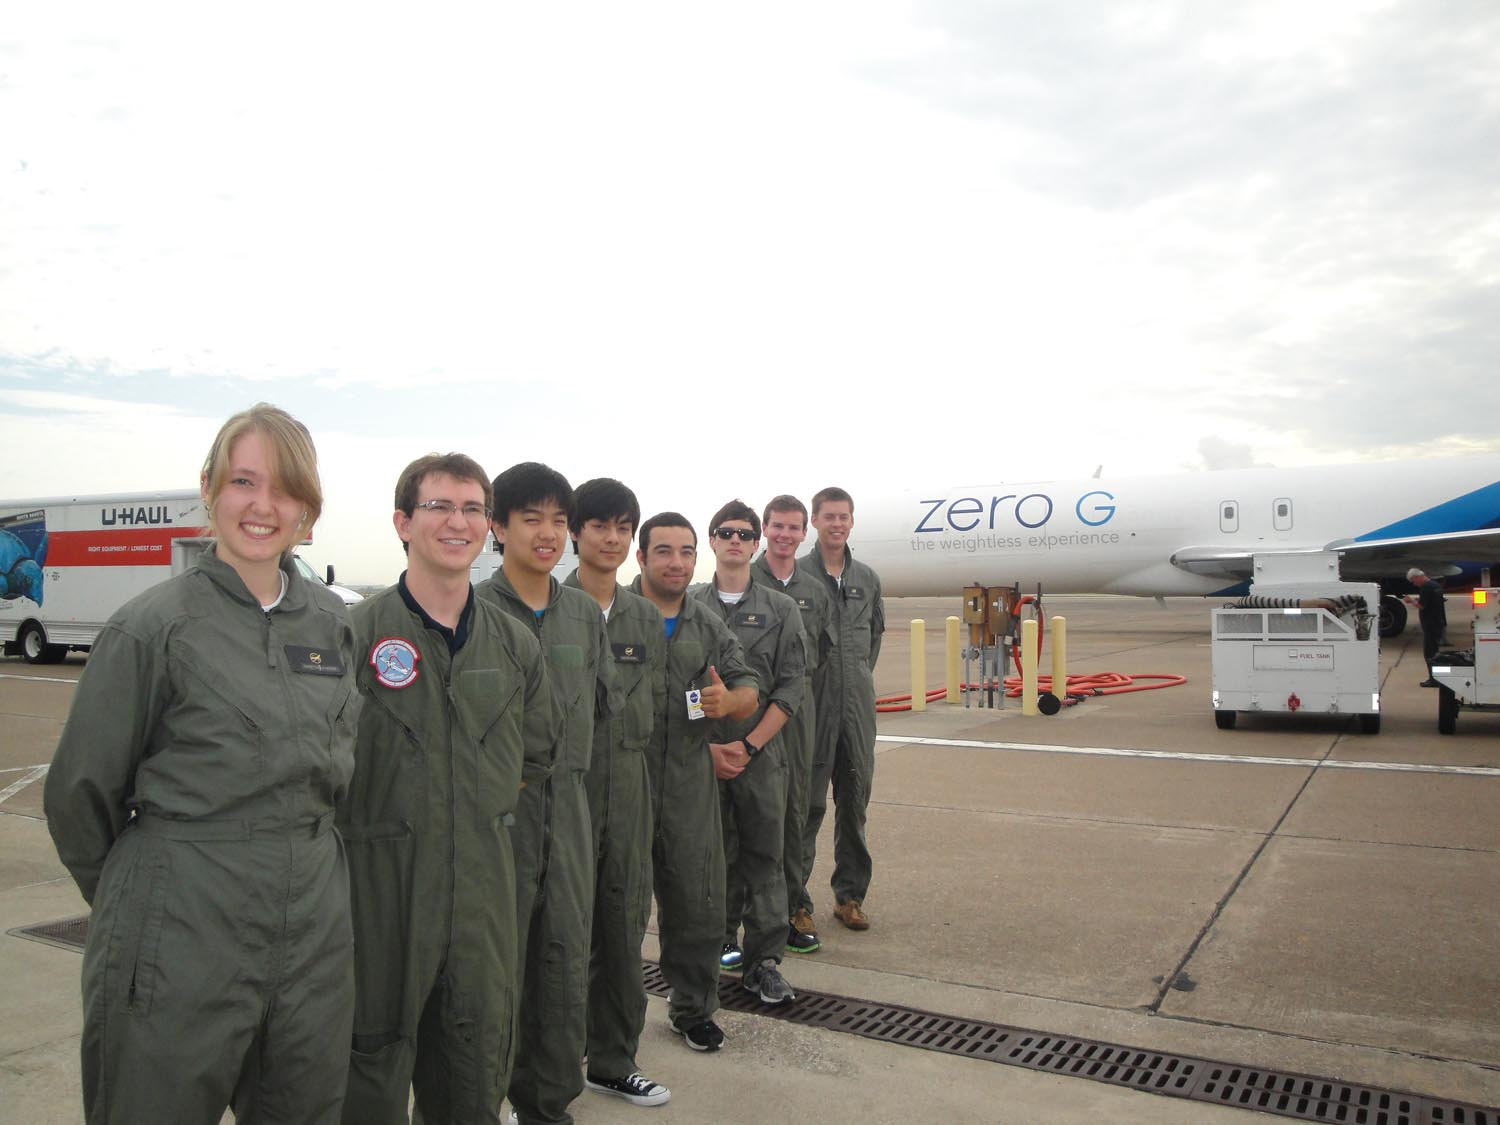 UCSD Microgravity team: Go for Flight